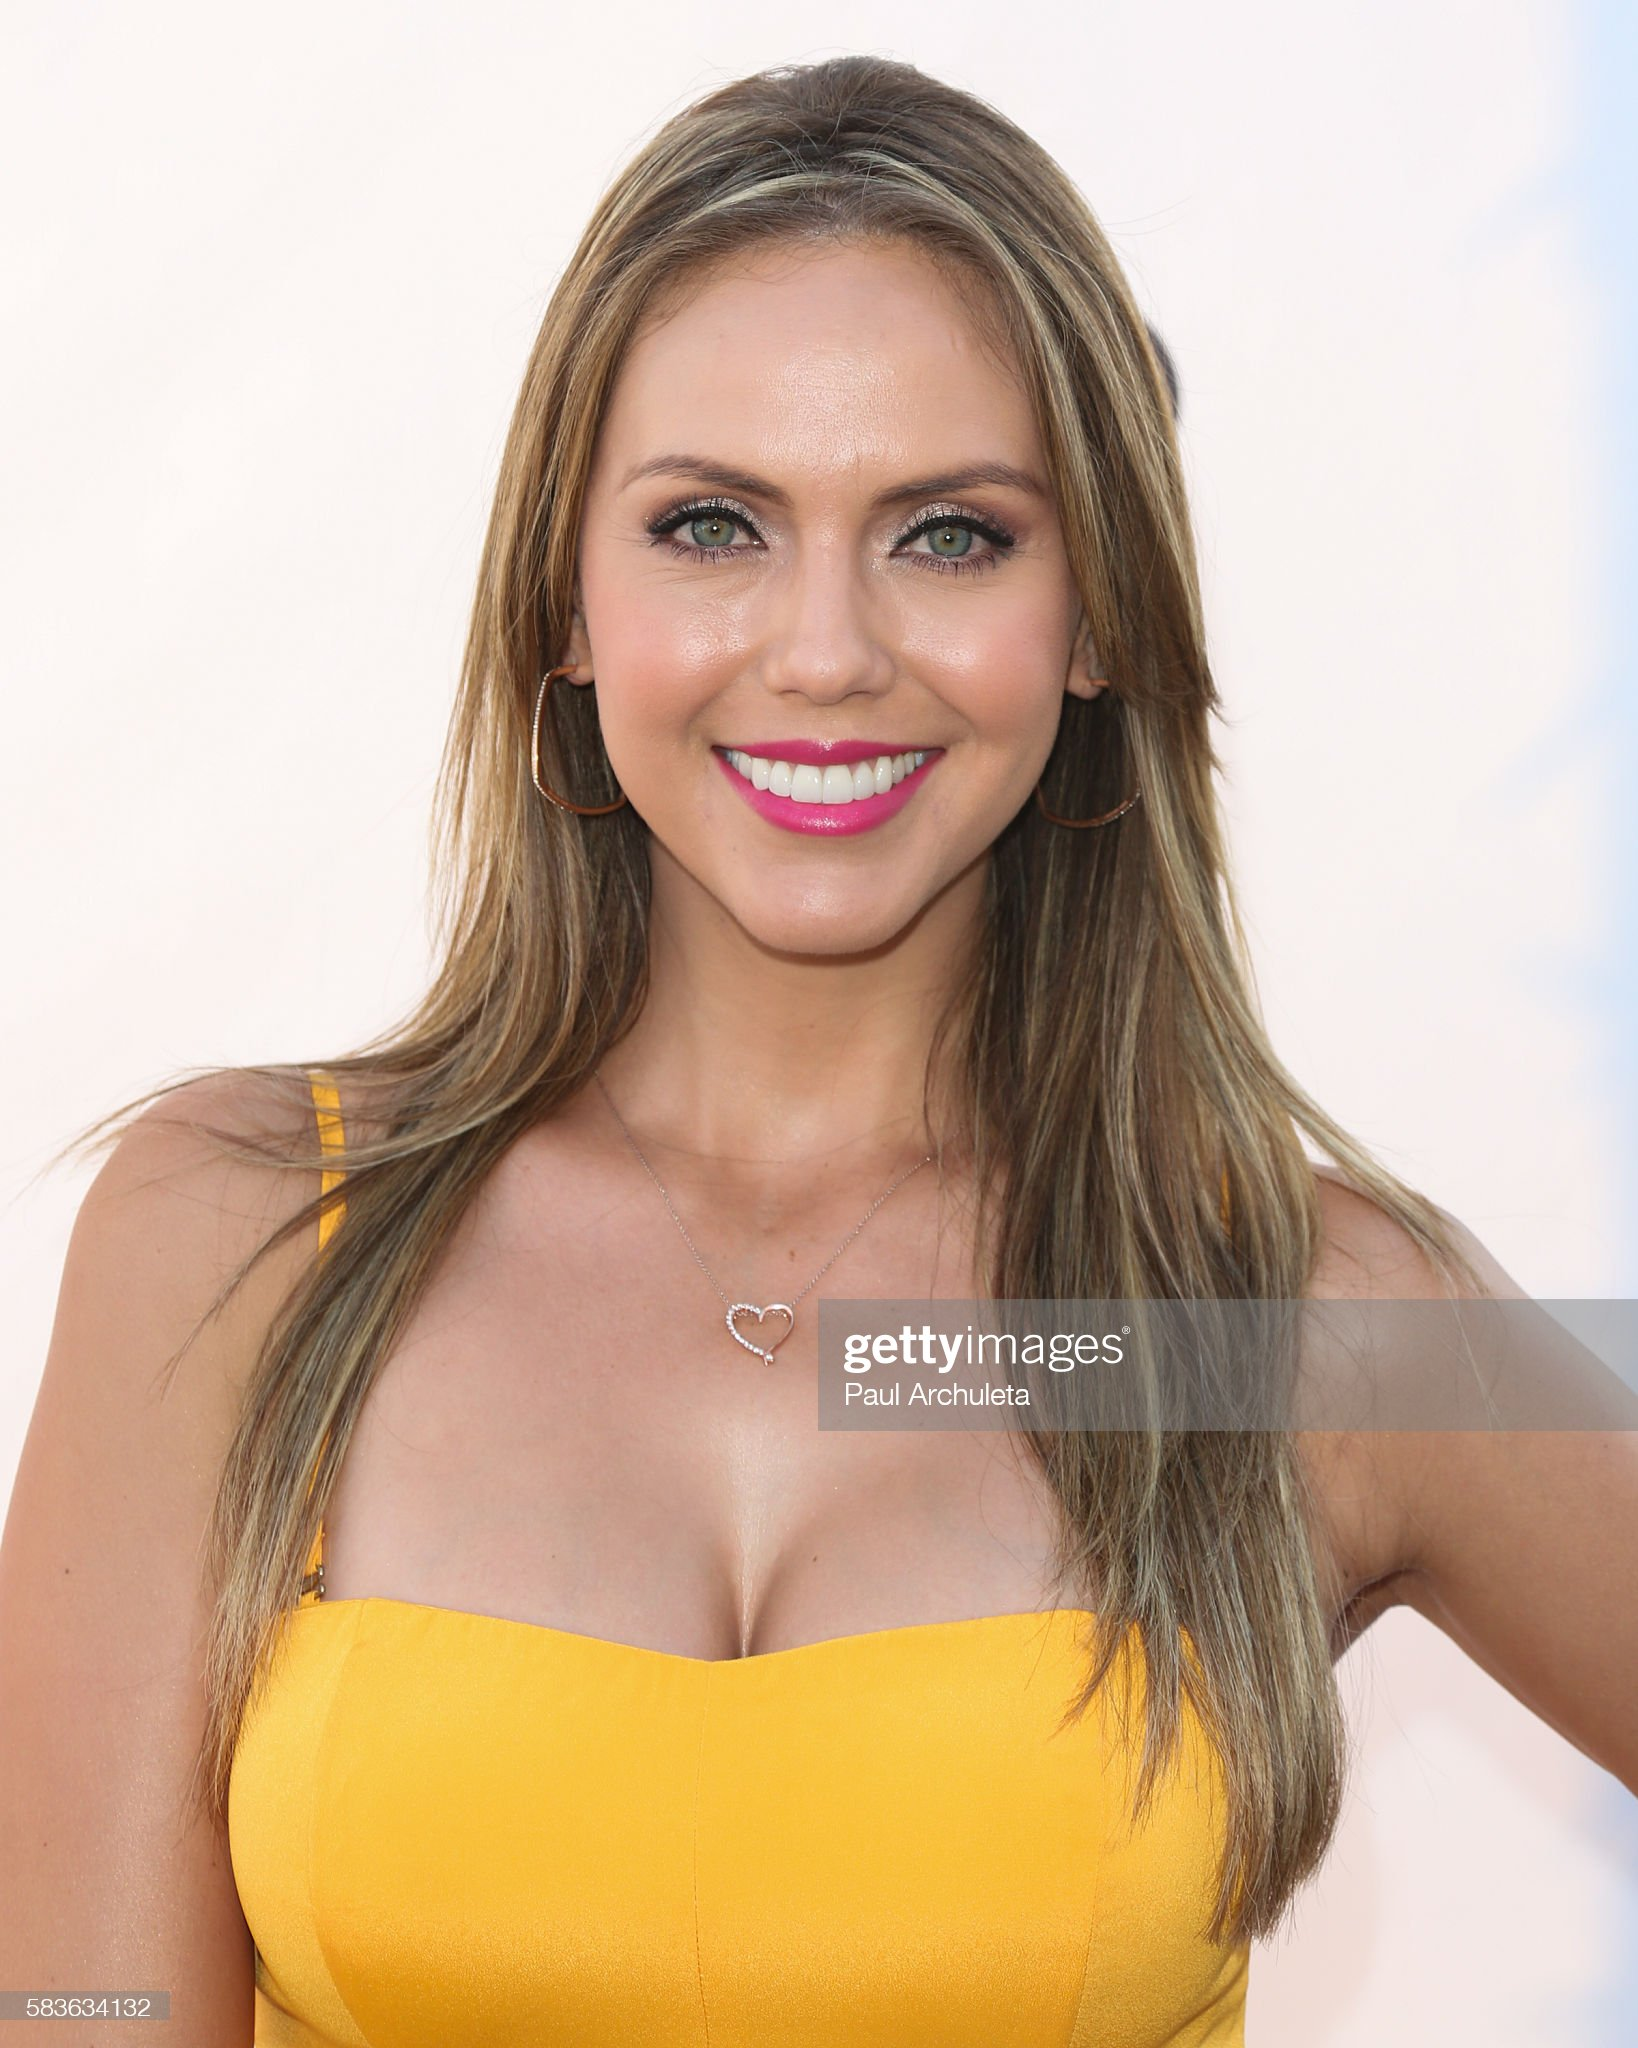 Ojos verdes - Famosas y famosos con los ojos de color VERDE Personality-jessica-carrillo-attends-nbcs-olympics-social-opening-at-picture-id583634132?s=2048x2048